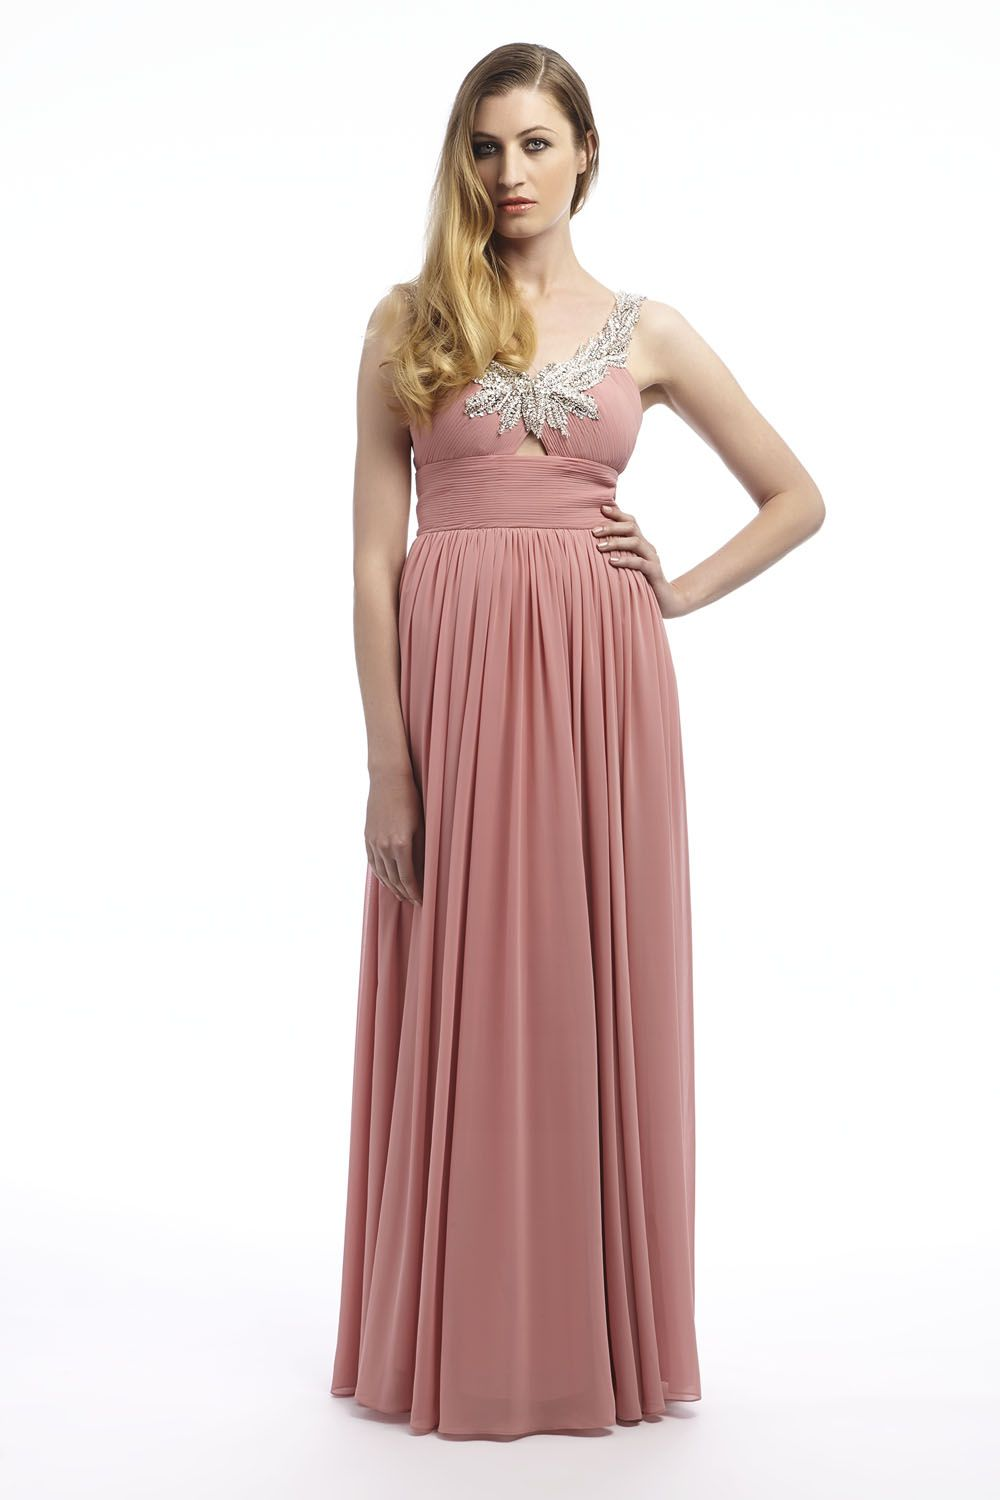 Chiffon maxi dress in dusky pink with silver strap detailing as